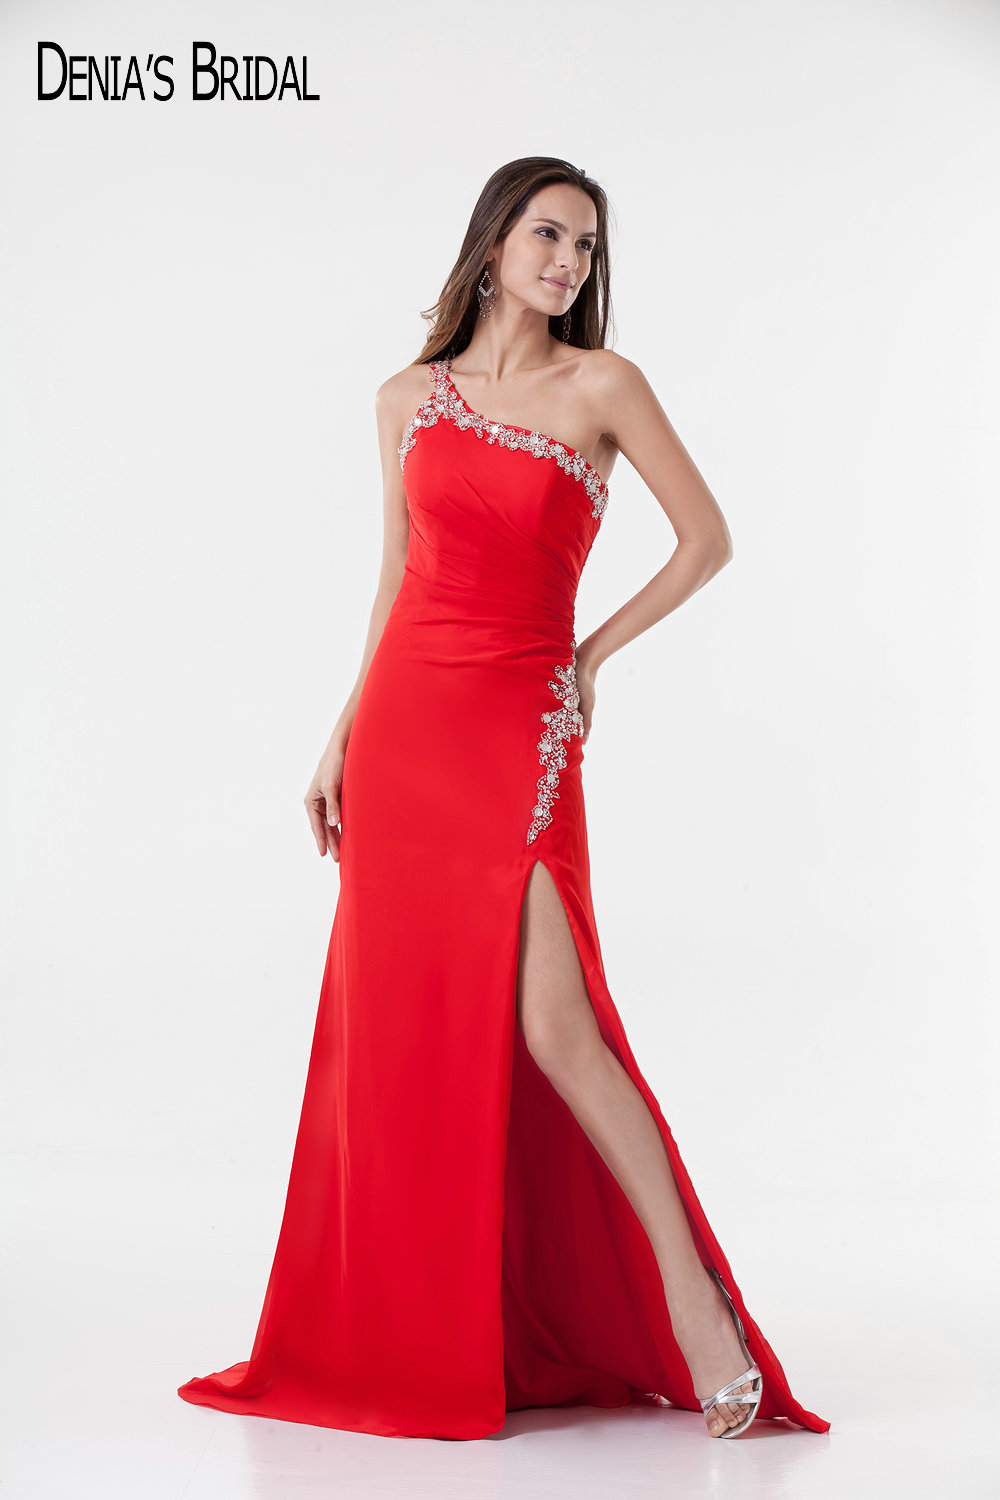 2017 Actual Images Red Mermaid Evening Dresses with Sweetheart Neckline Side Split Floor Length Beaded Sliver